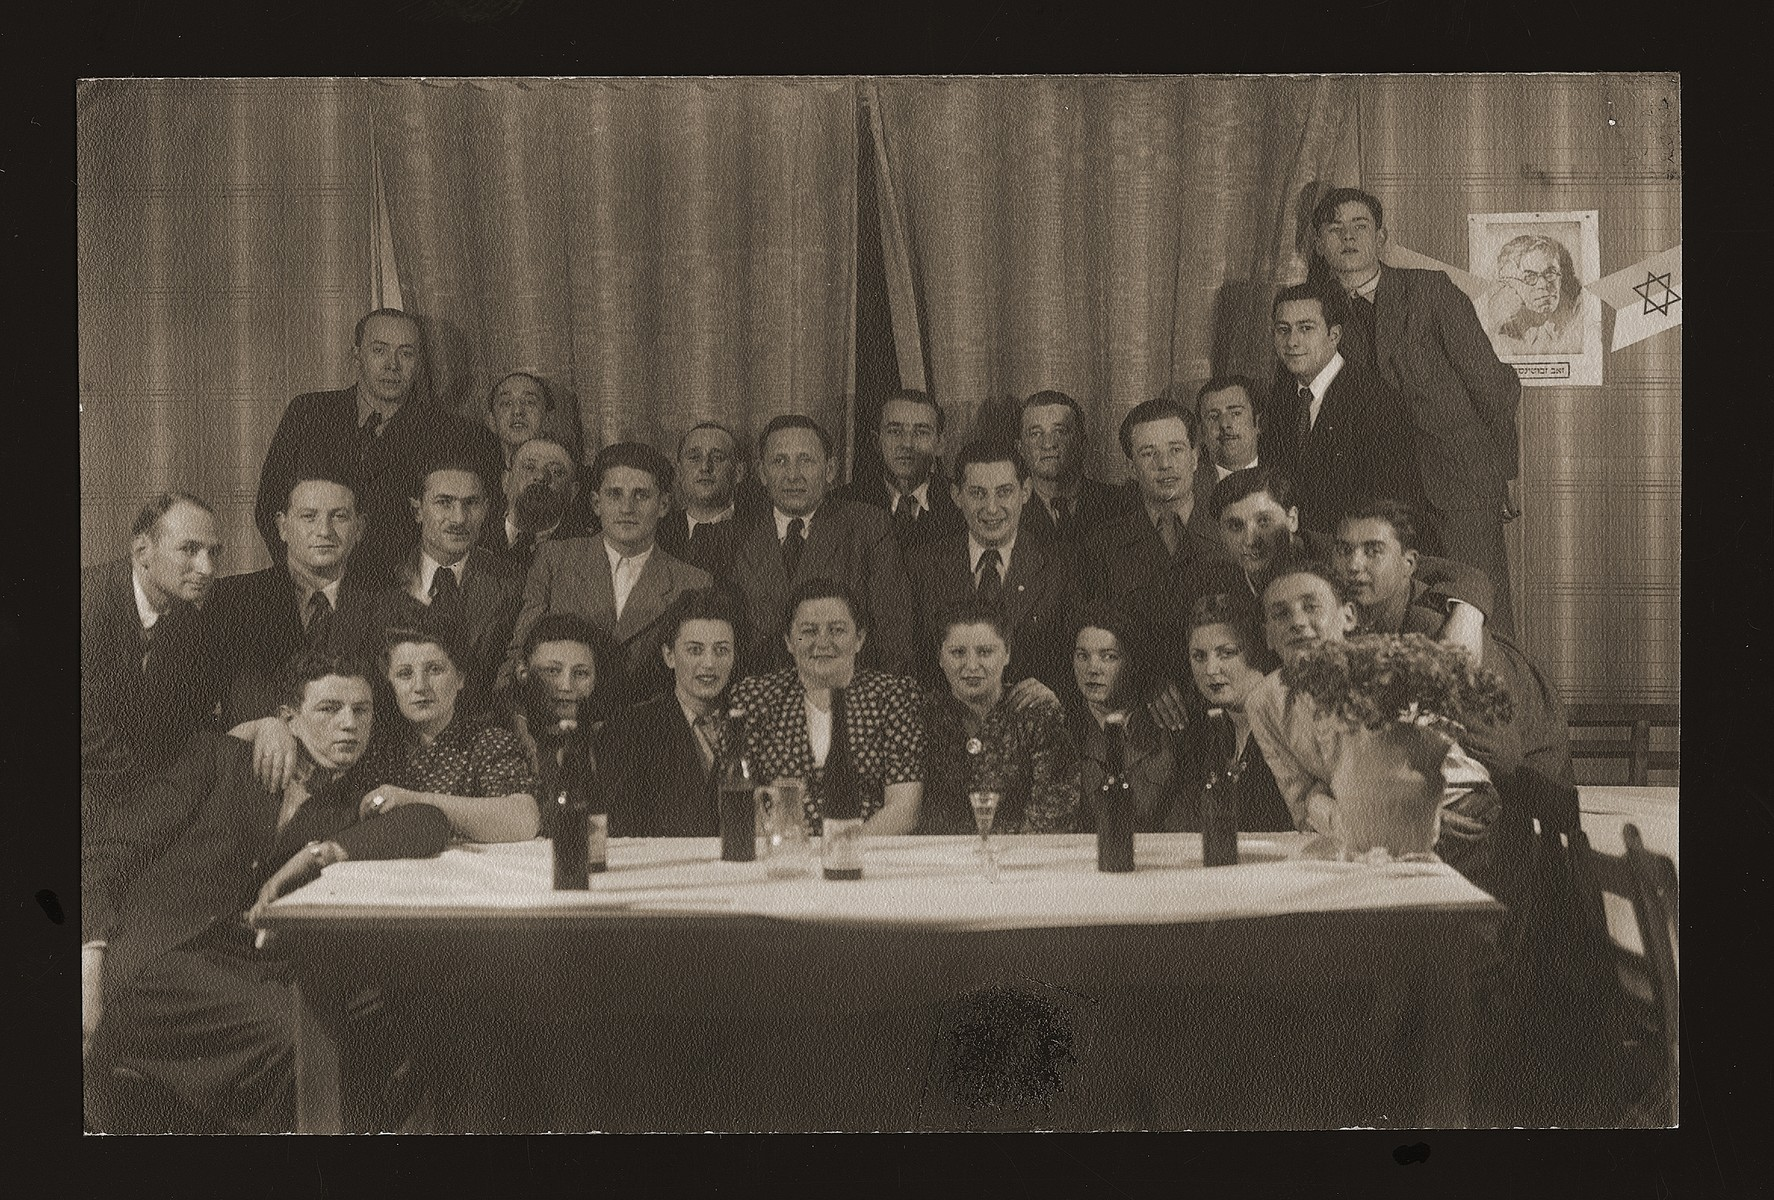 Group portrait of Jewish DPs in the Heidenheim displaced persons camp gathered around a table next to a portrait of Revisionist Zionist leader, Vladimir Jabotinsky.   Among those pictured is tanding in the second row is Leon Kliot (Klott), second from the left.  Israel Begam is fourth from the left. His wife, Esther Begam, is seated just in front of him with his hand on her shoulder.